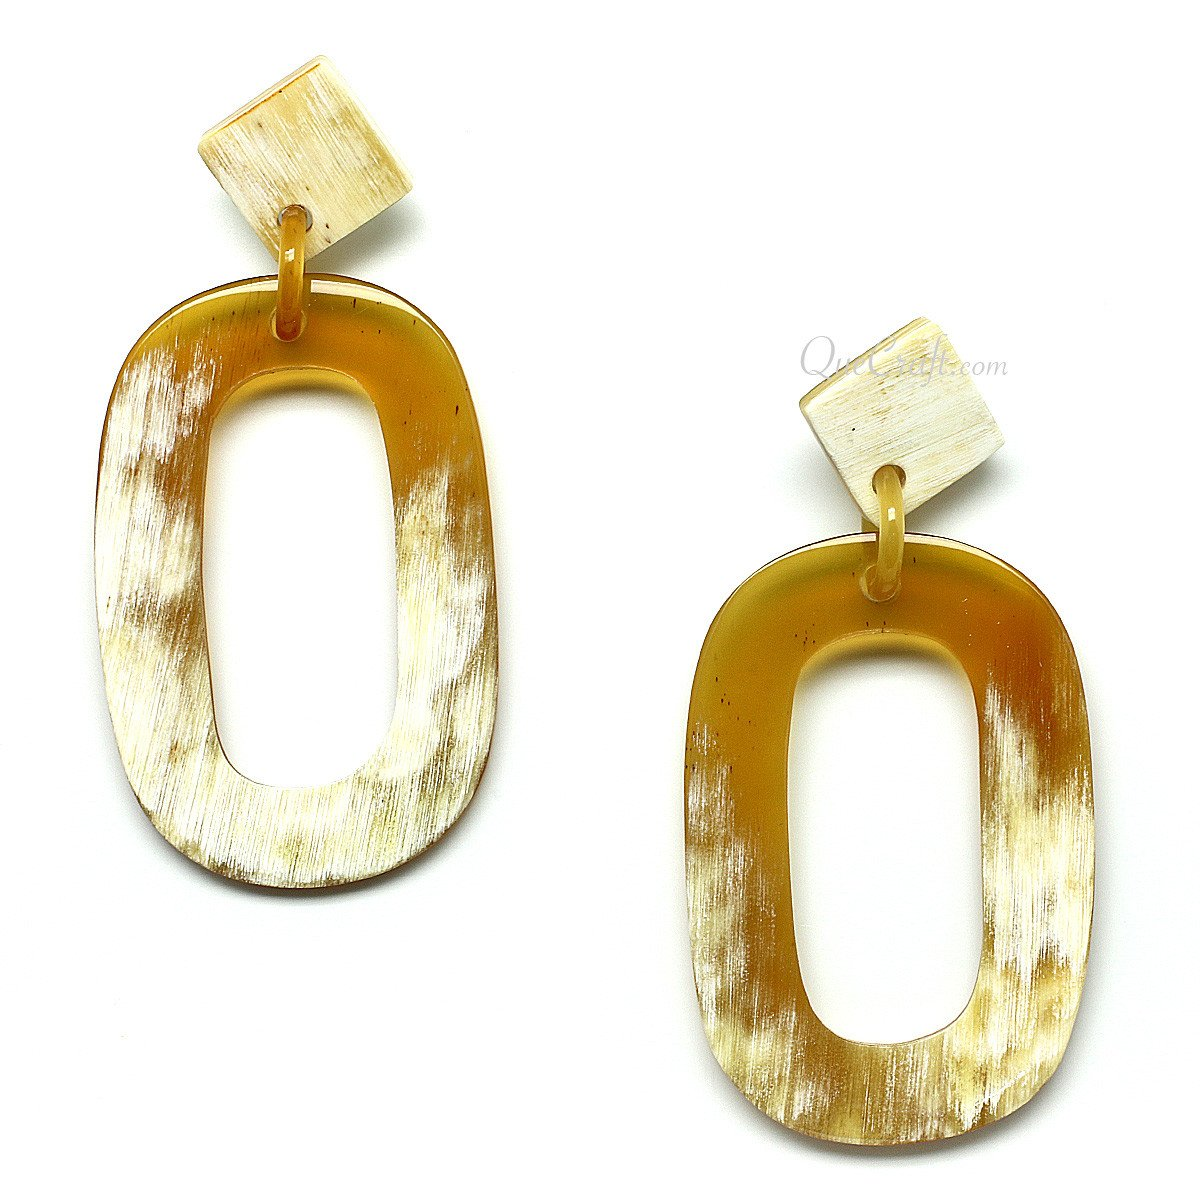 Horn Earrings #11566 - HORN.JEWELRY